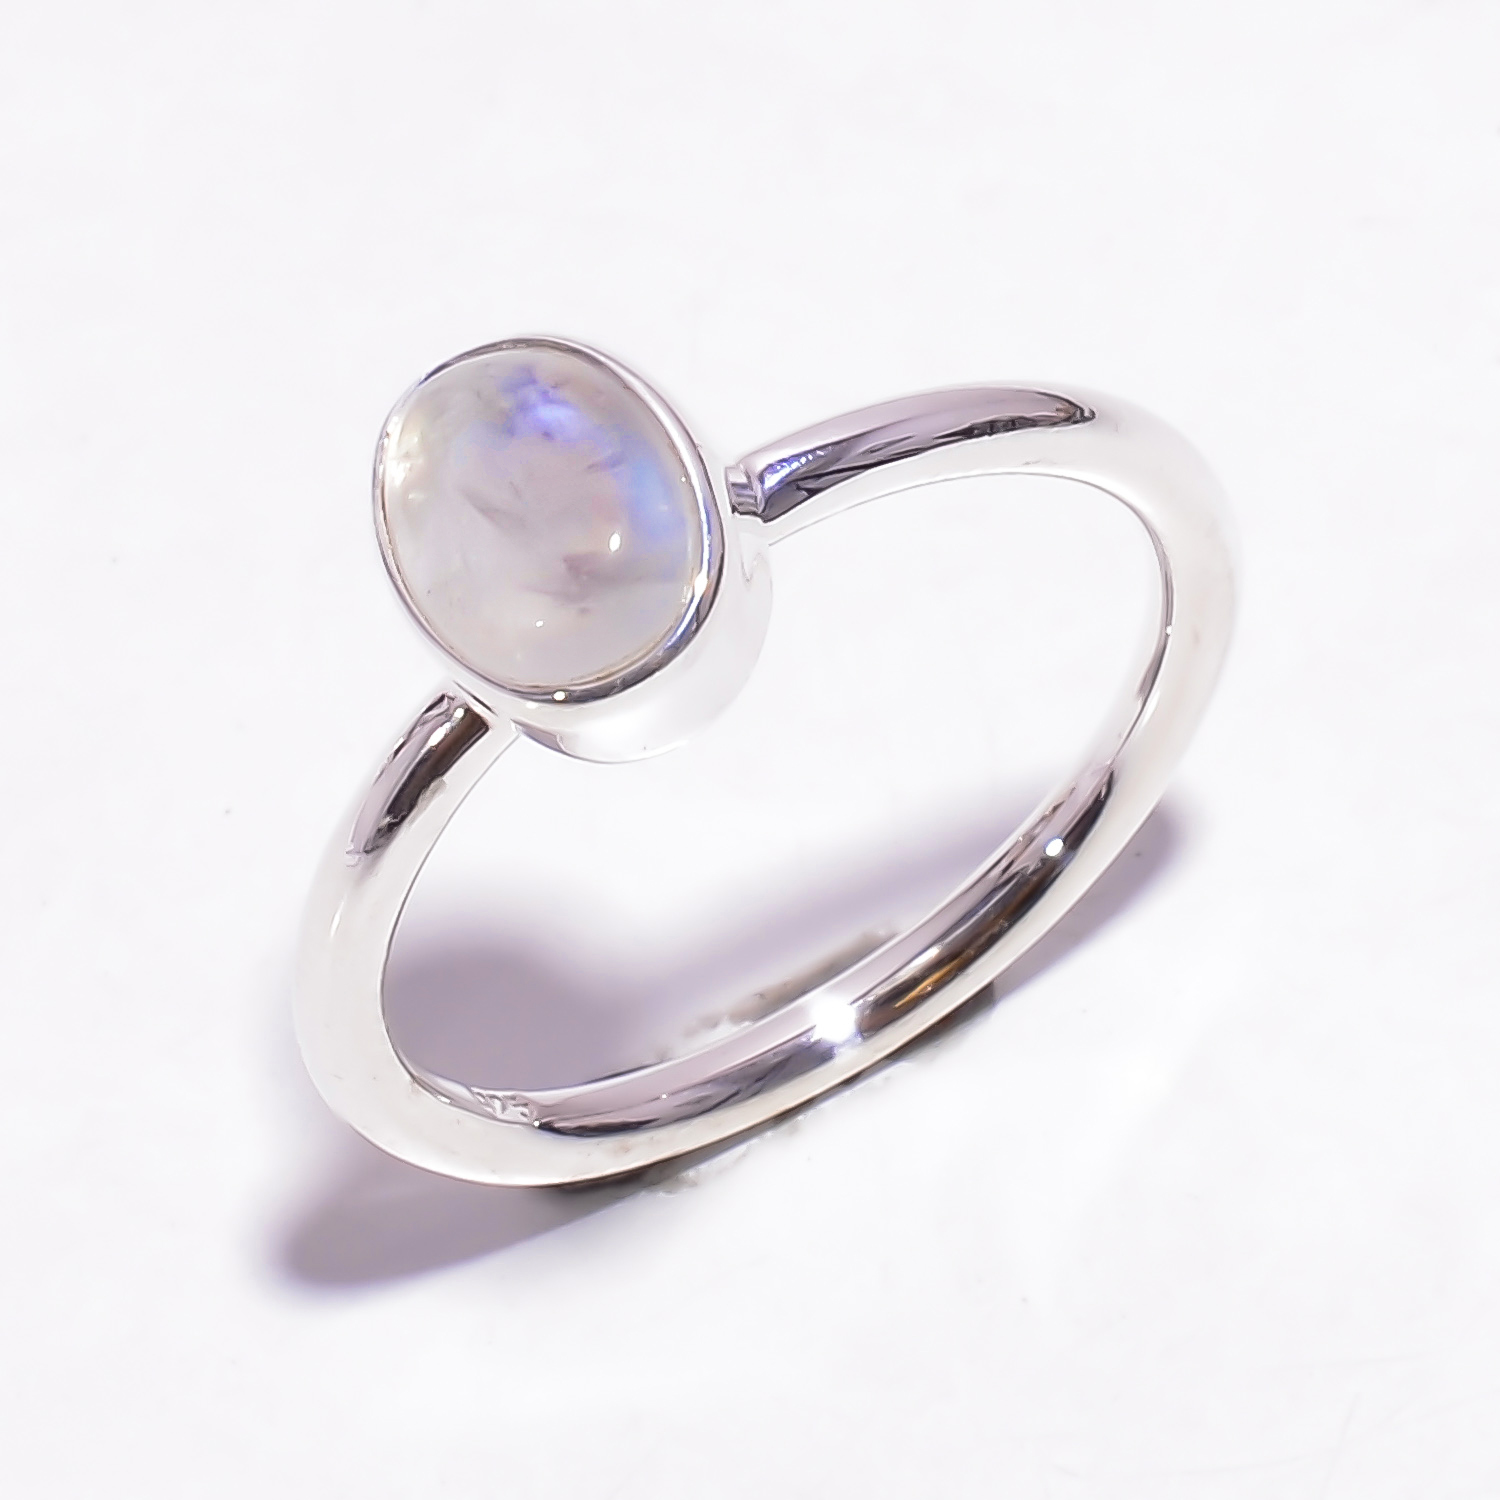 Natural Rainbow Moonstone 925 Sterling Silver Ring Size 8.25